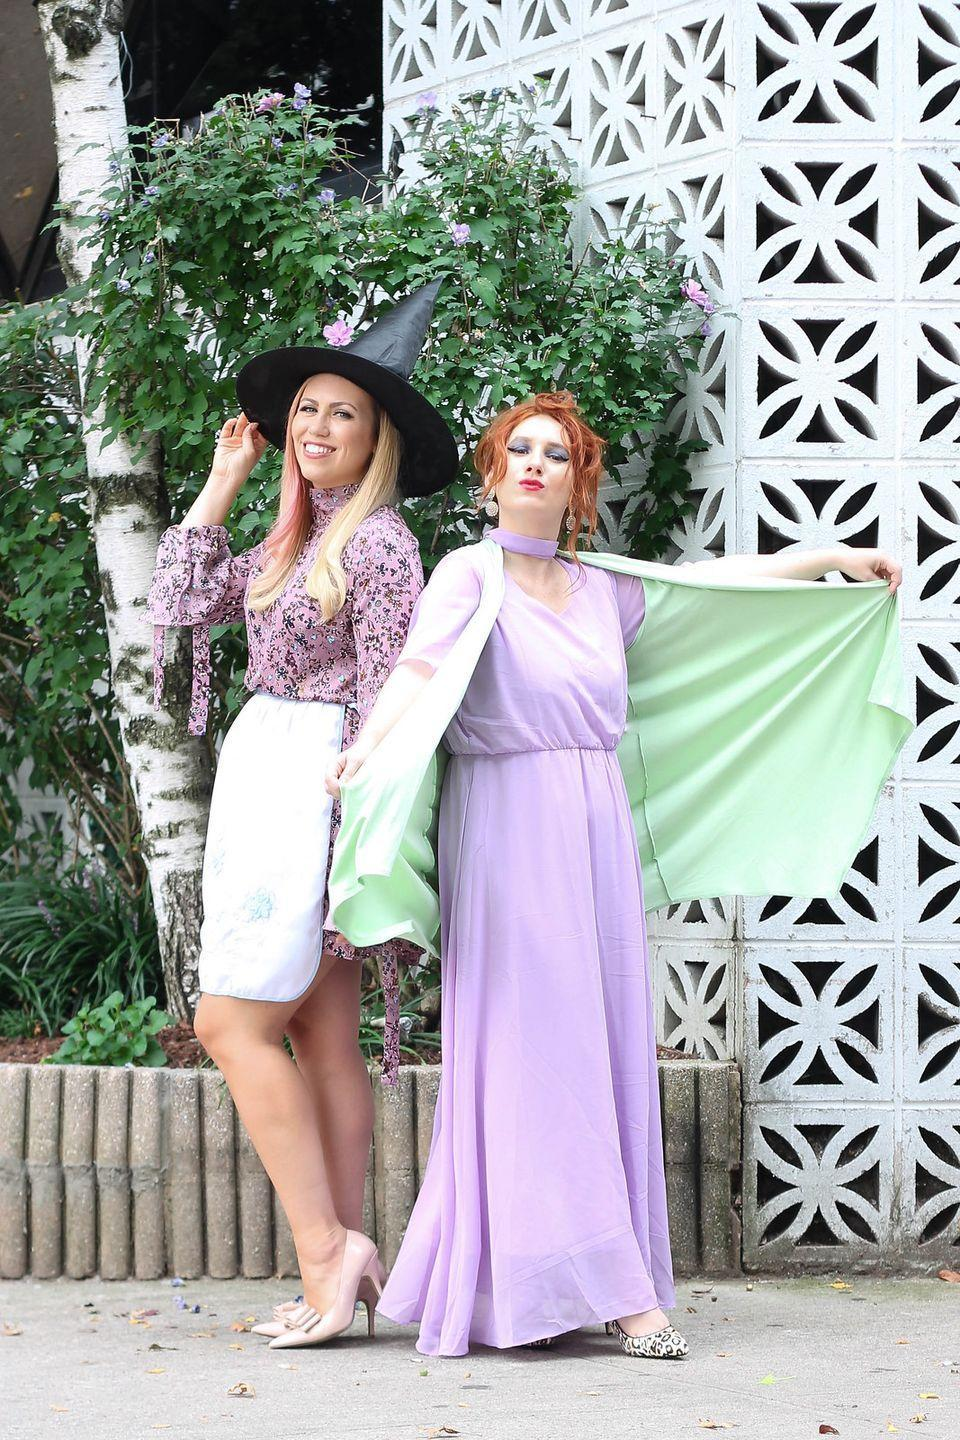 """<p>Admit it: You've always wanted to be able to wiggle your nose and do magic! Now you can when you and your pal come as Samantha Stevens and her always-popping-in mom, Endora. </p><p><strong>Get the tutorial at <a href=""""http://livingaftermidnite.com/2017/10/best-friend-halloween-costumes.html"""" rel=""""nofollow noopener"""" target=""""_blank"""" data-ylk=""""slk:Living after Midnite"""" class=""""link rapid-noclick-resp"""">Living after Midnite</a>. </strong></p><p><a class=""""link rapid-noclick-resp"""" href=""""https://www.amazon.com/KOH-Cocktail-Slimming-Sundress-Dresses/dp/B07Z7T8Z1Q/ref=cs_sr_dp_5?dchild=1&keywords=purple%2Bshort%2Bsleeved%2Bchiffon%2Bmaxi%2Bdress&qid=1591988969&sr=8-1&th=1&tag=syn-yahoo-20&ascsubtag=%5Bartid%7C10050.g.21349110%5Bsrc%7Cyahoo-us"""" rel=""""nofollow noopener"""" target=""""_blank"""" data-ylk=""""slk:SHOP PASTEL MAXI DRESSES"""">SHOP PASTEL MAXI DRESSES</a></p>"""